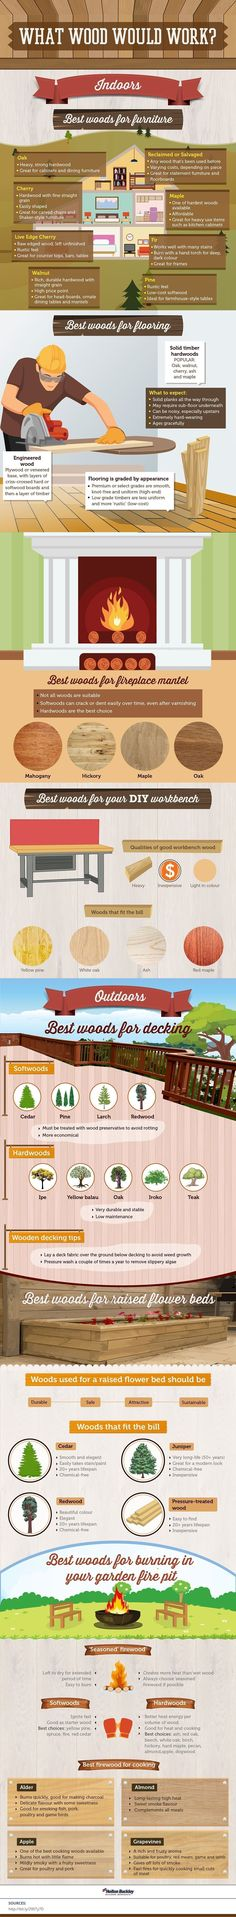 Which Wood is Best for Furniture, Flooring, Outdoors Infographic. Topic: carpenter, carpentry, woodworking, interior design, home improvement. #woodworkinginfographic #homefurniture